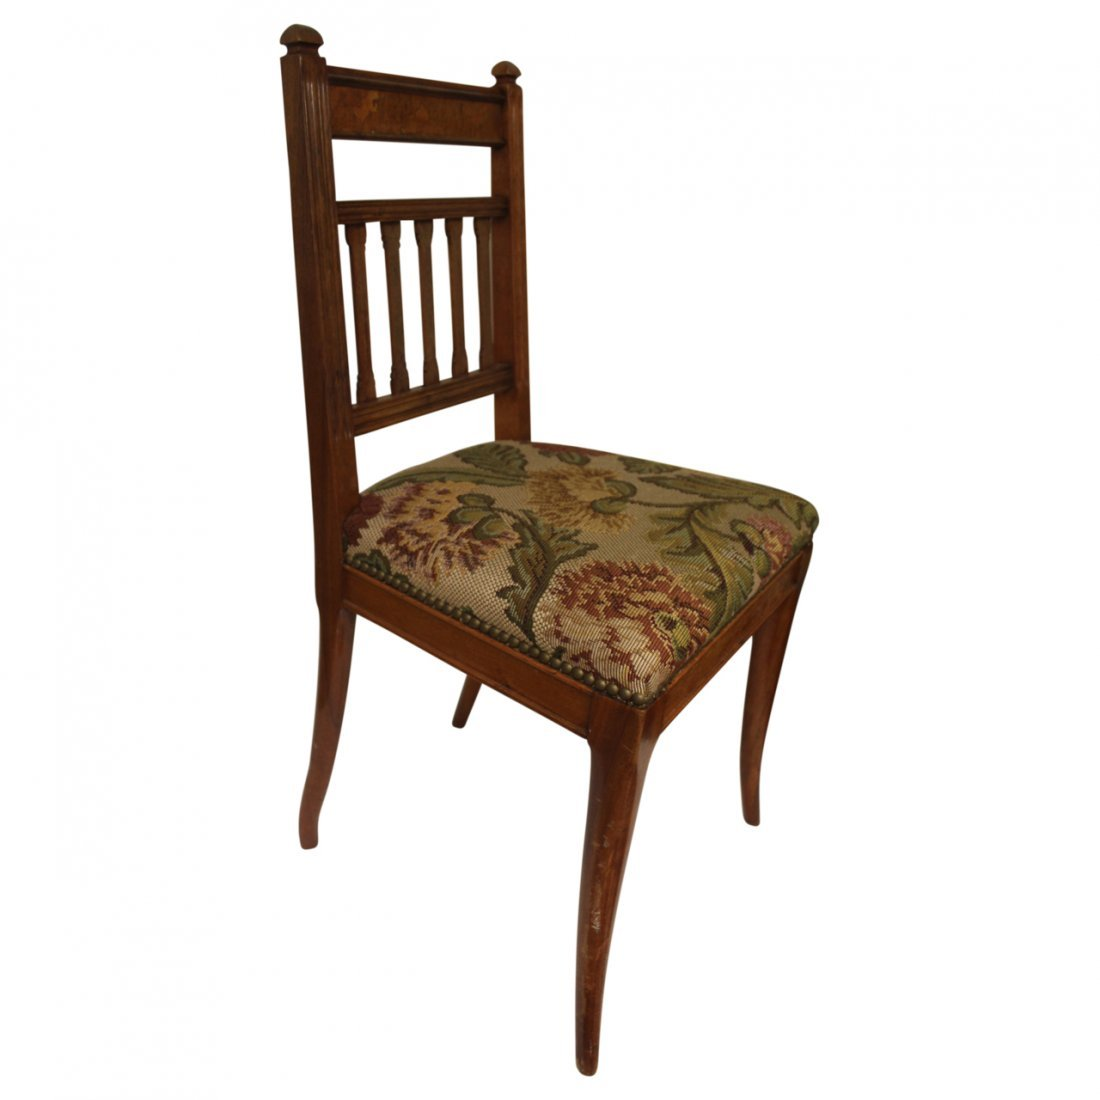 SIDE CHAIR EMILE GALLE (1846-1904) - 2